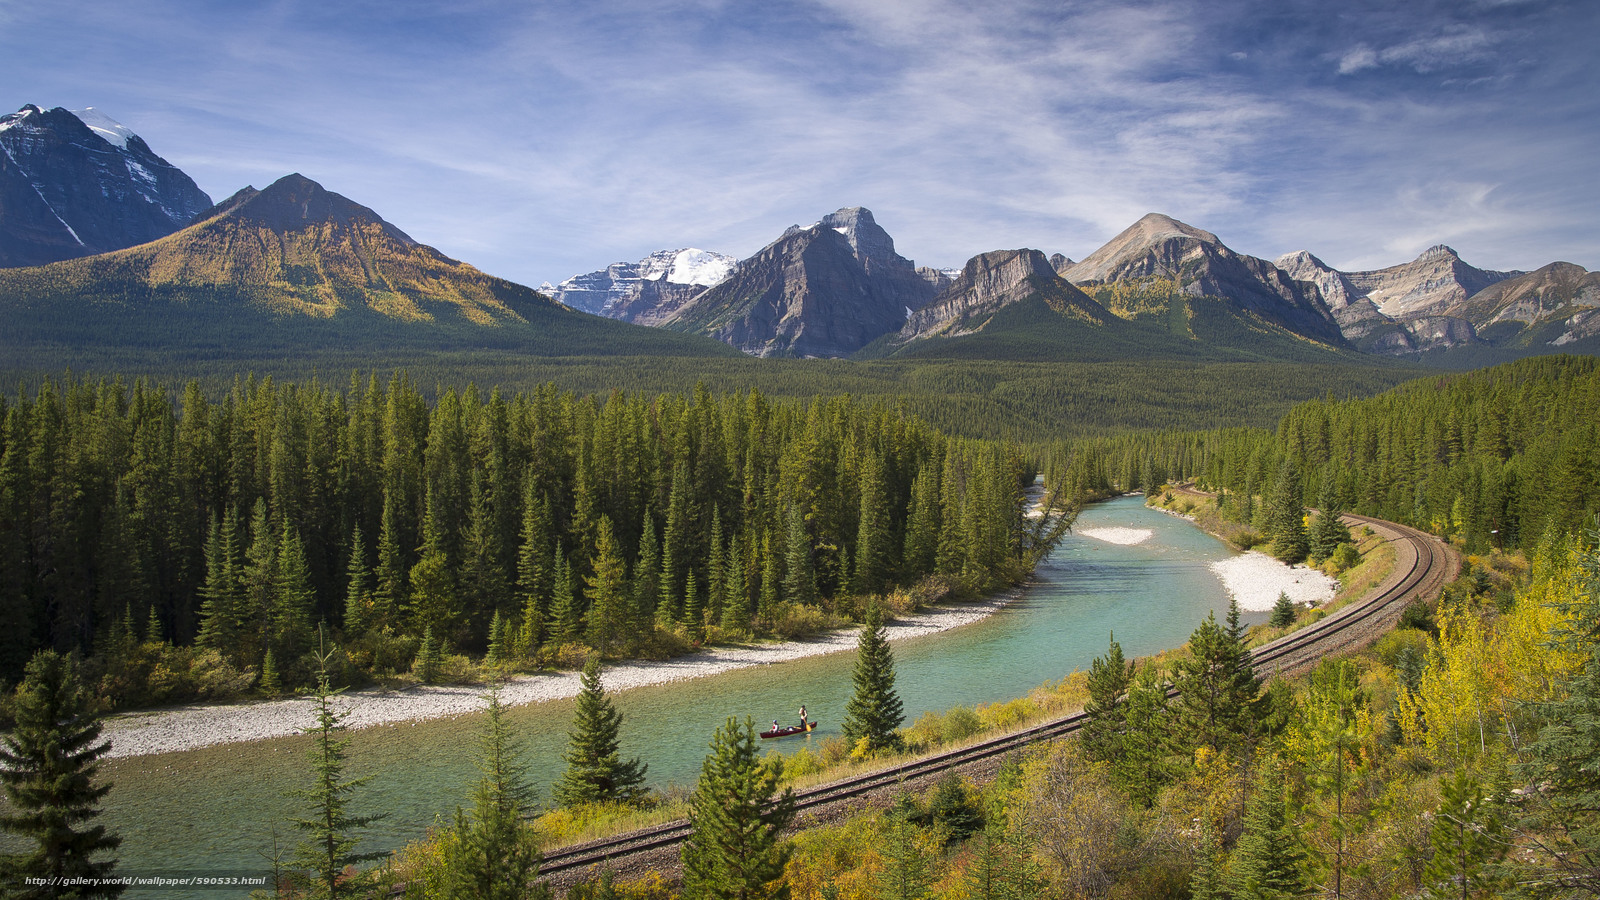 Download hintergrund bow river kanada mountains fluss freie desktop